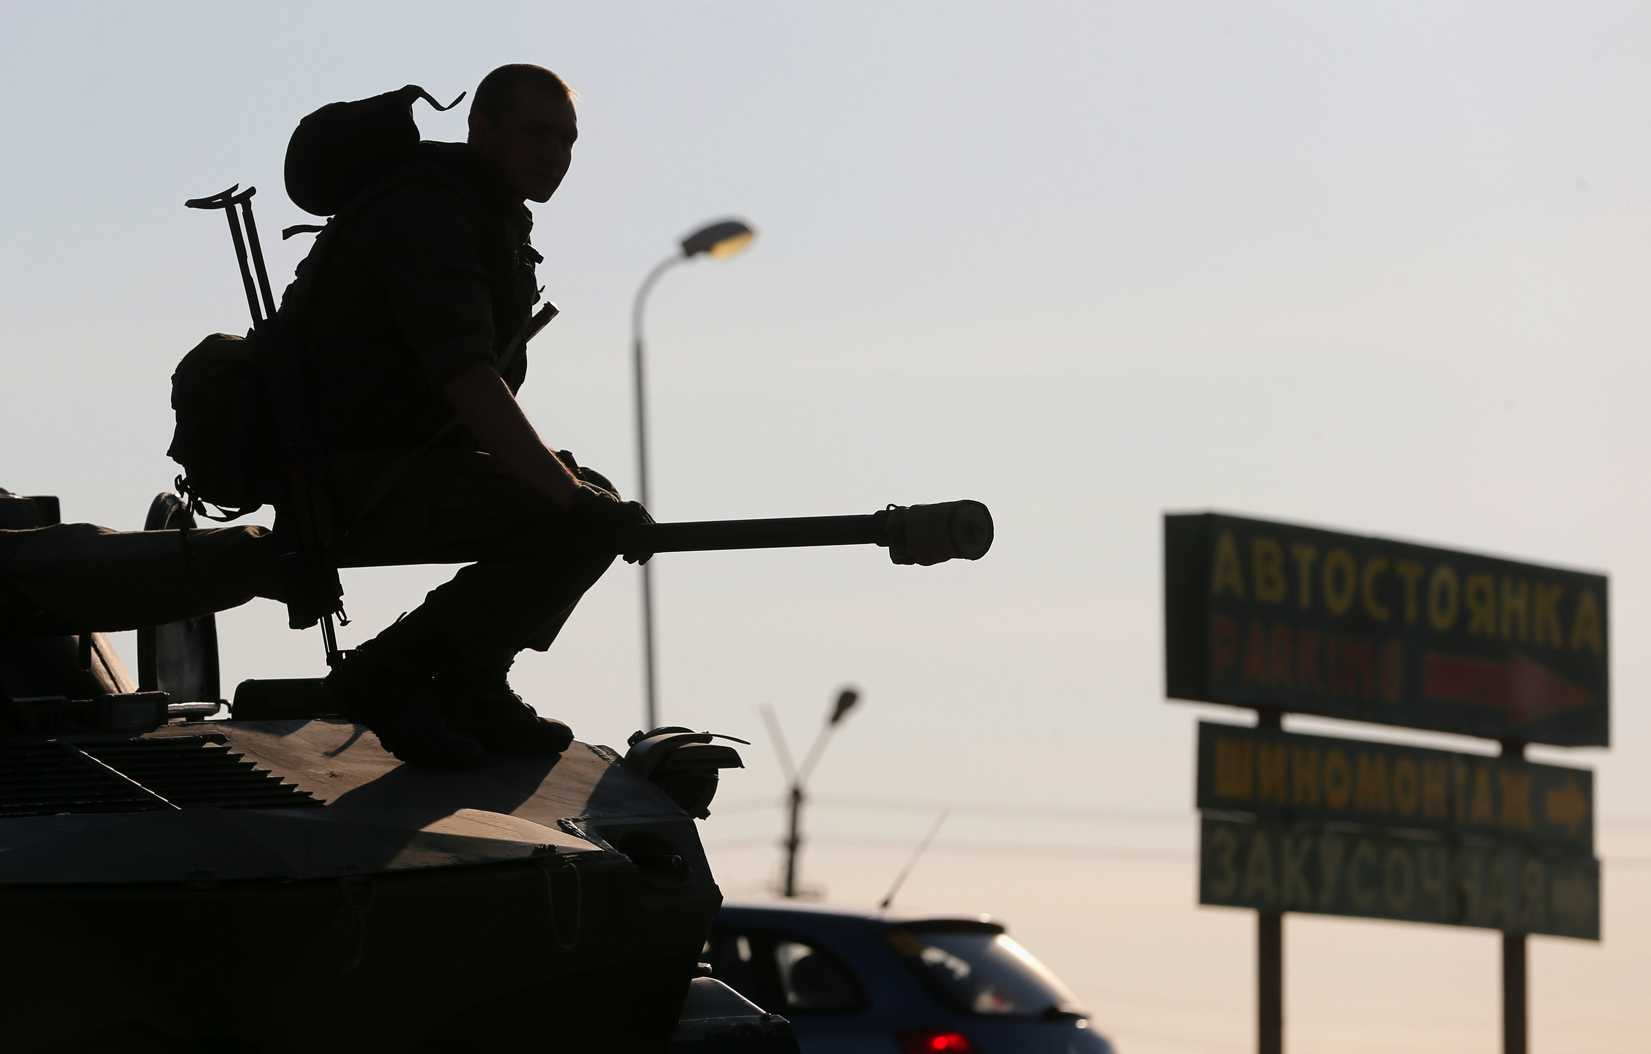 A Russian serviceman sits atop an armored vehicle outside Kamensk-Shakhtinsky, Russia's Rostov region, on Aug. 15, 2014. Dozens of heavy Russian military vehicles amassed on Friday near the border with Ukraine where a huge Russian convoy with humanitarian aid came to a halt as Moscow and Kiev struggled to agree border crossing procedures